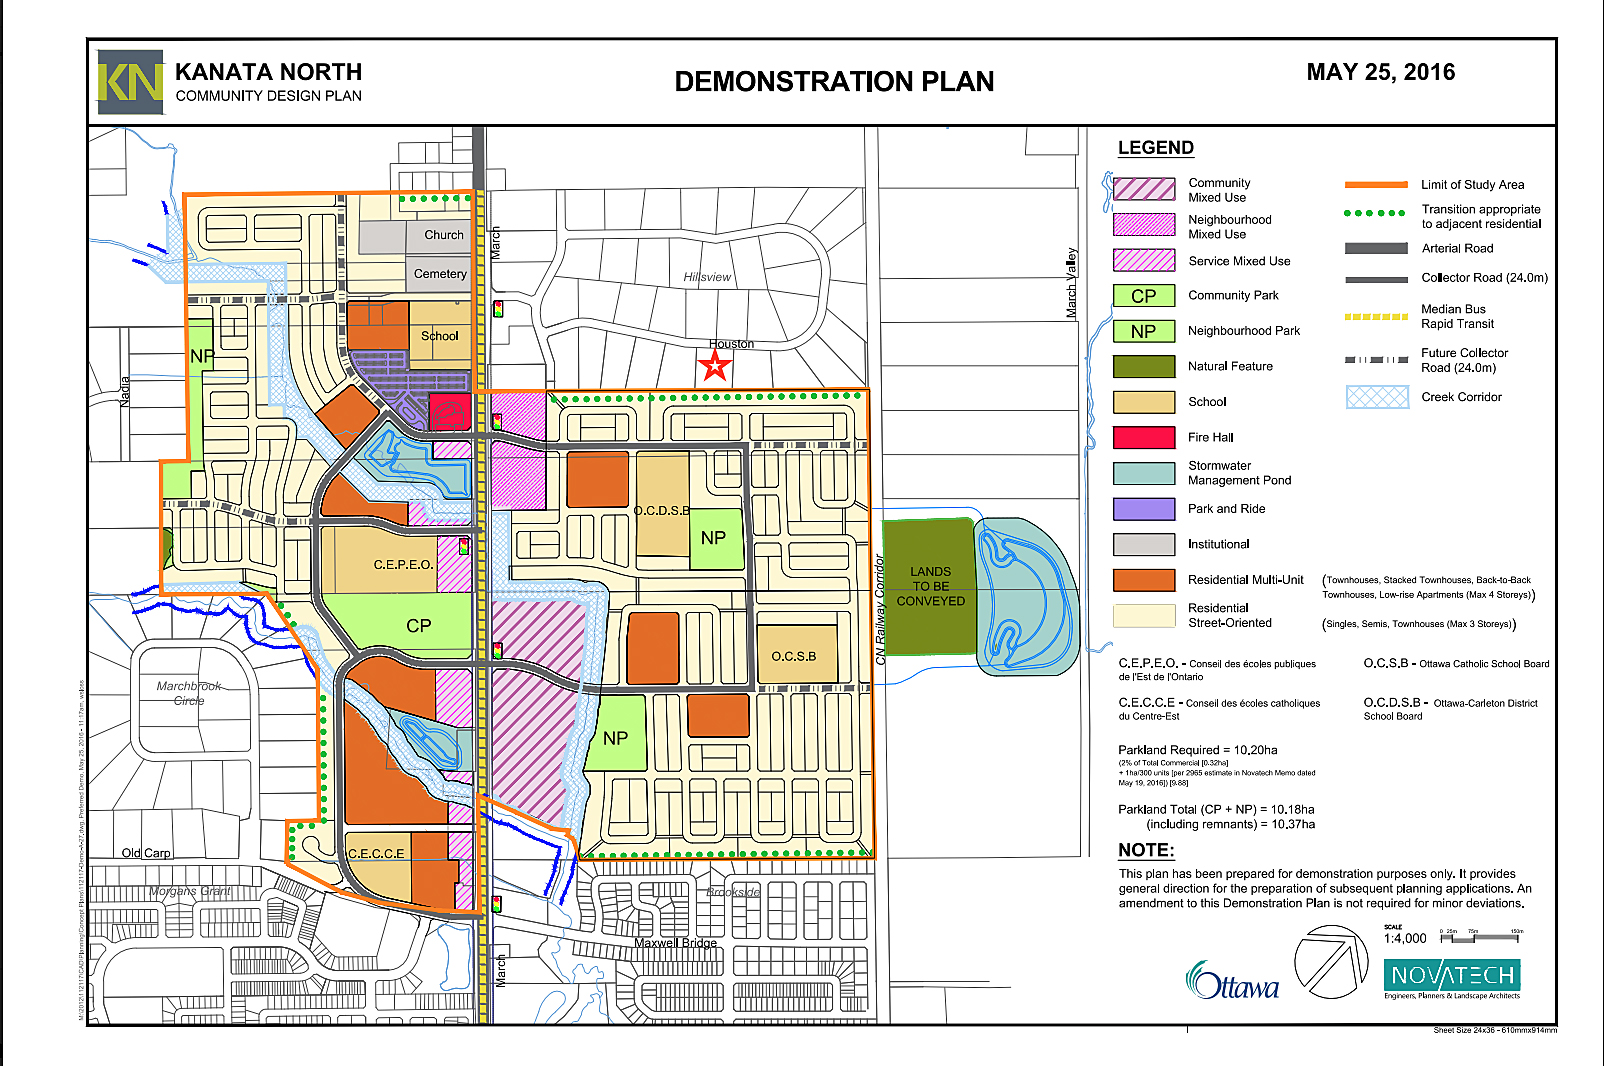 March Rd. plan proposes 1,681 new units